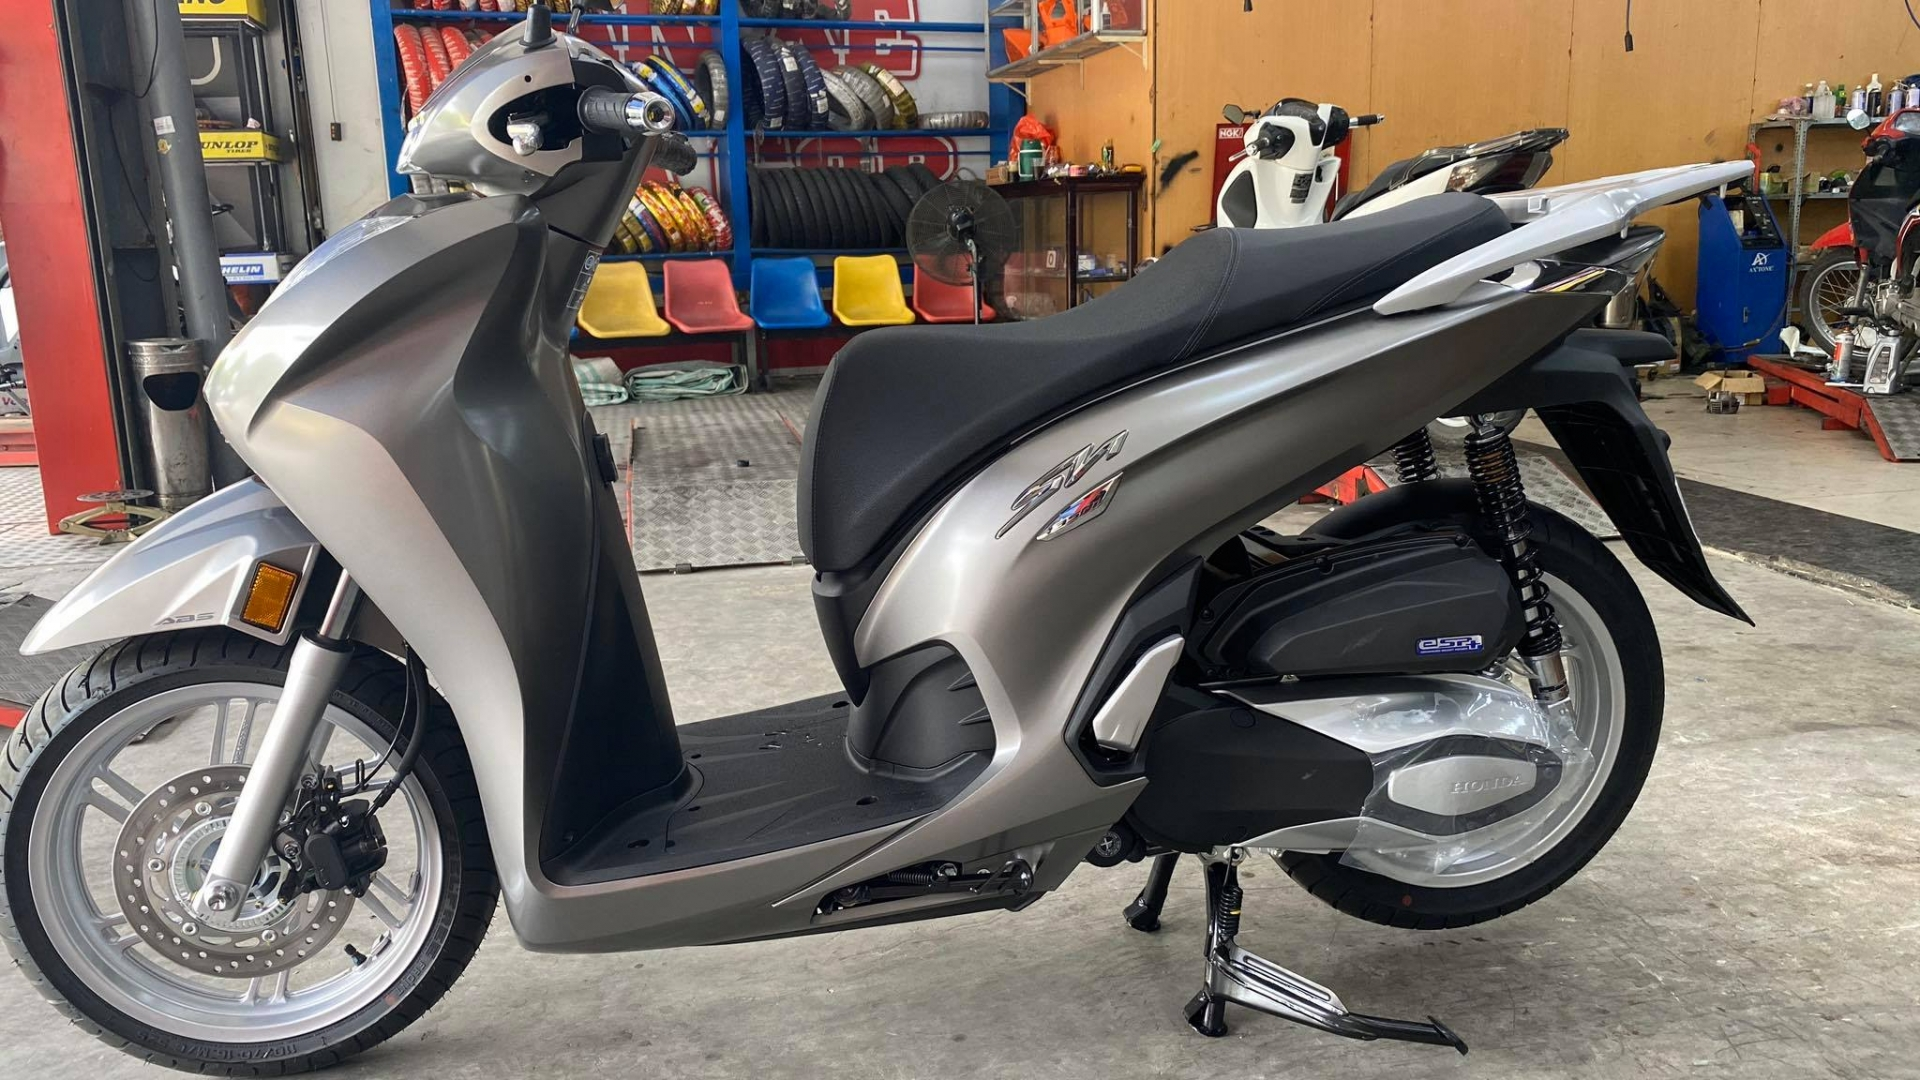 The first SH 350i is available in Vietnam: The scooter is only for real giants 2